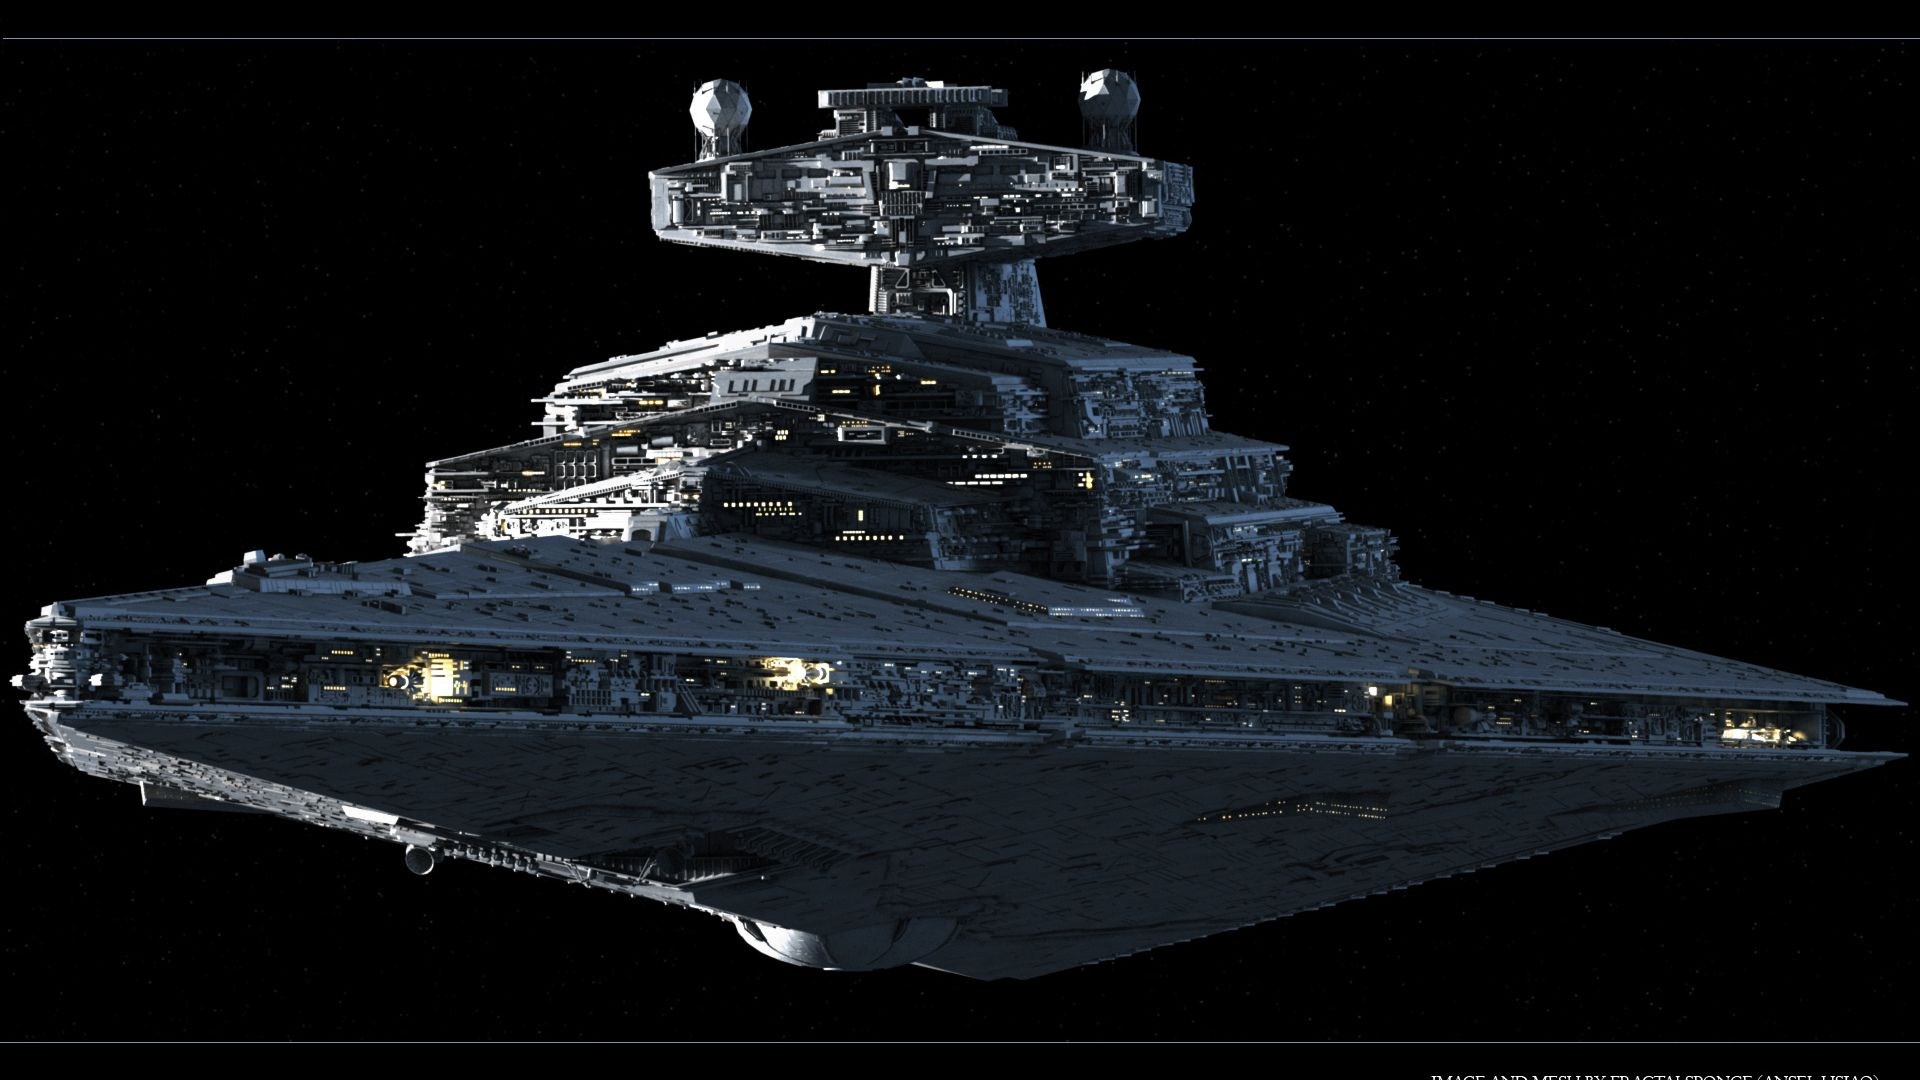 spaceship wallpapers | sci fi | star wars wallpaper, star wars